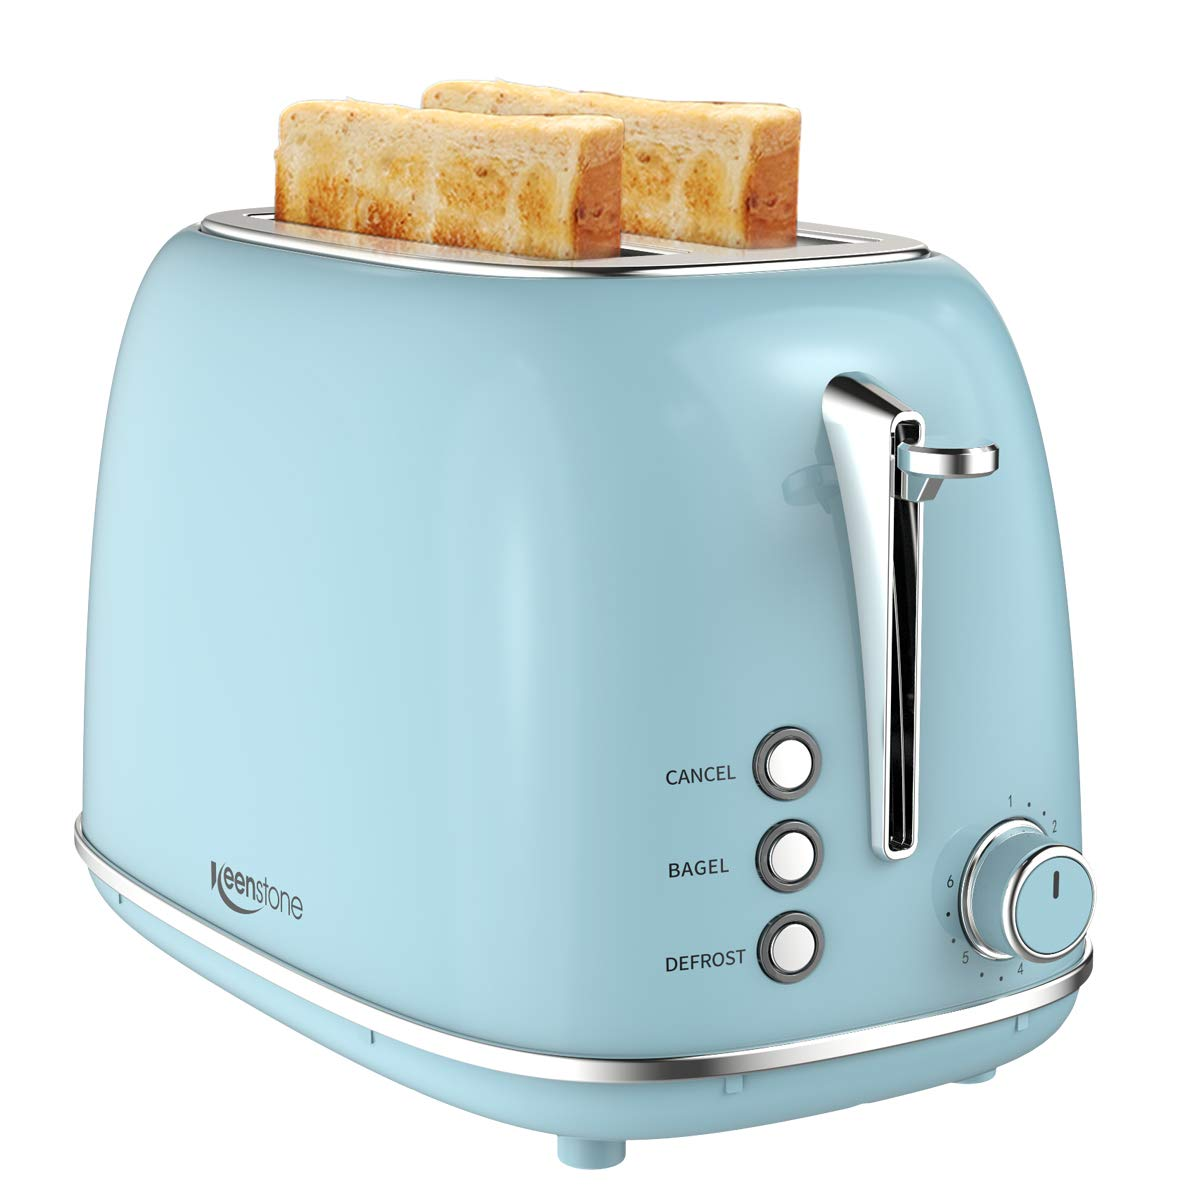 2 Slice Toaster Retro Stainless Steel Toaster with Bagel, Cancel, Defrost Function and 6 Bread Shade Settings Bread Toaster, Extra Wide Slot and Removable Crumb Tray, Blue by Keenstone